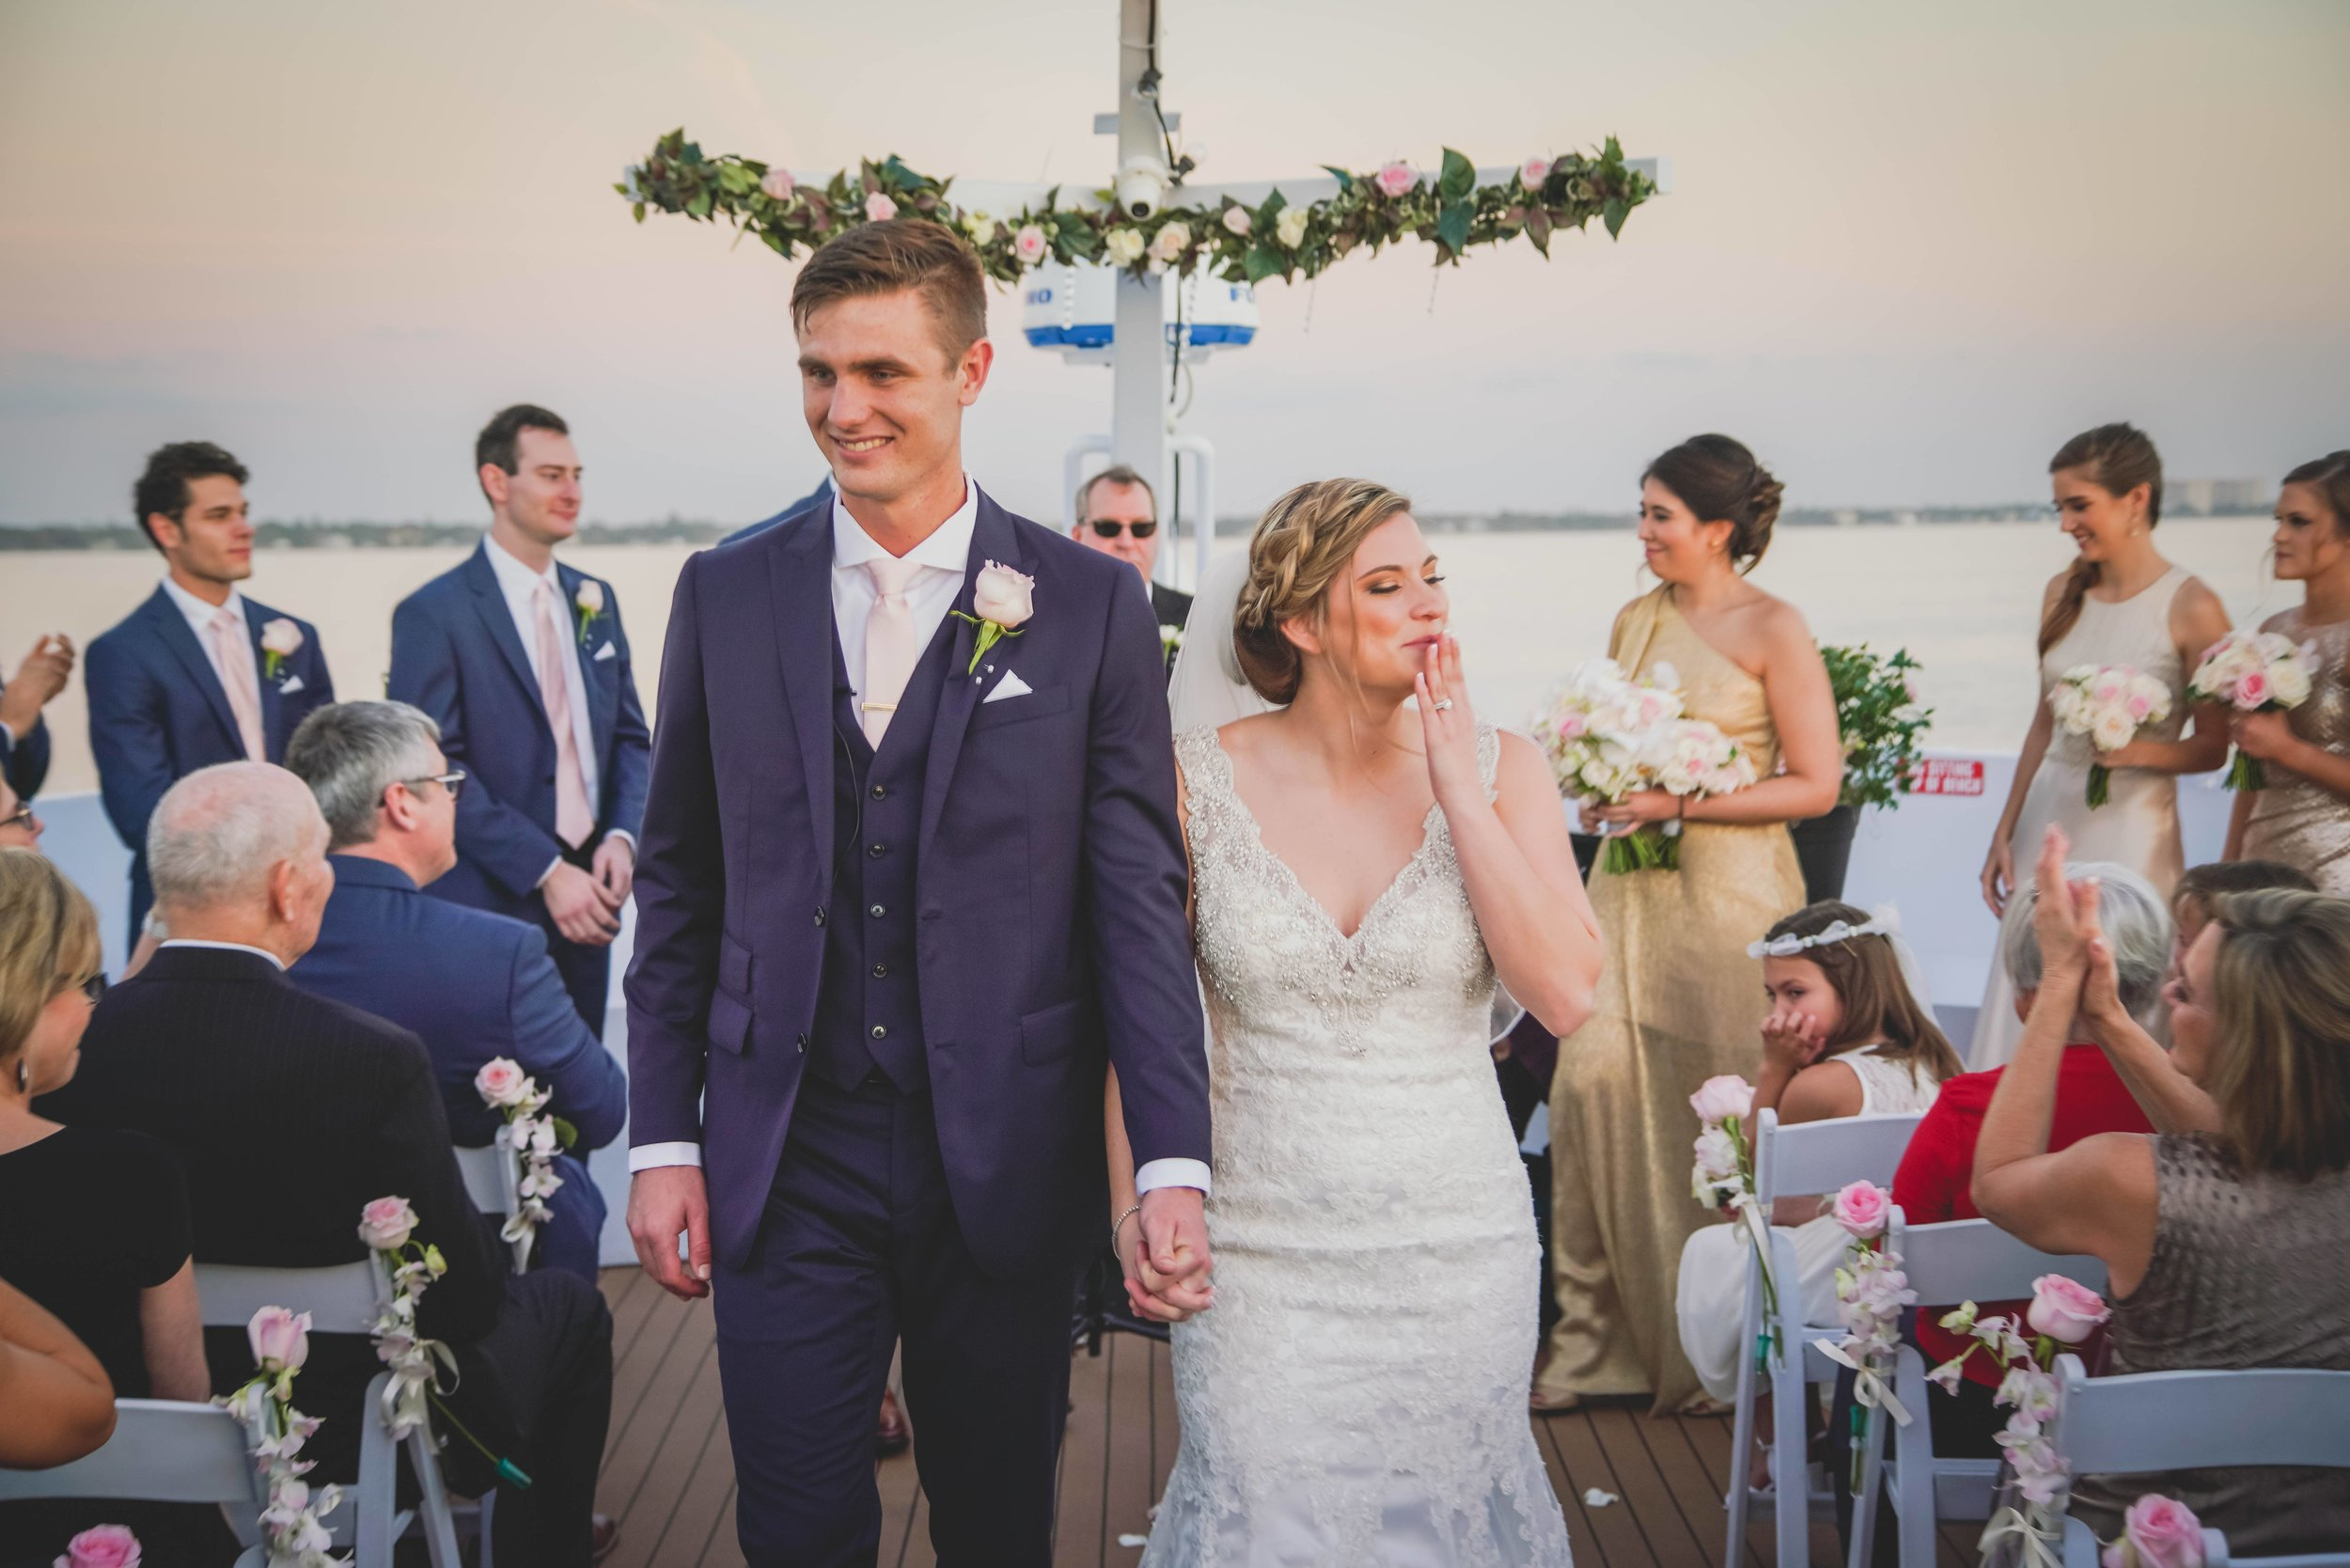 A newlywed couple exit their wedding ceremony on the deck of a yacht.